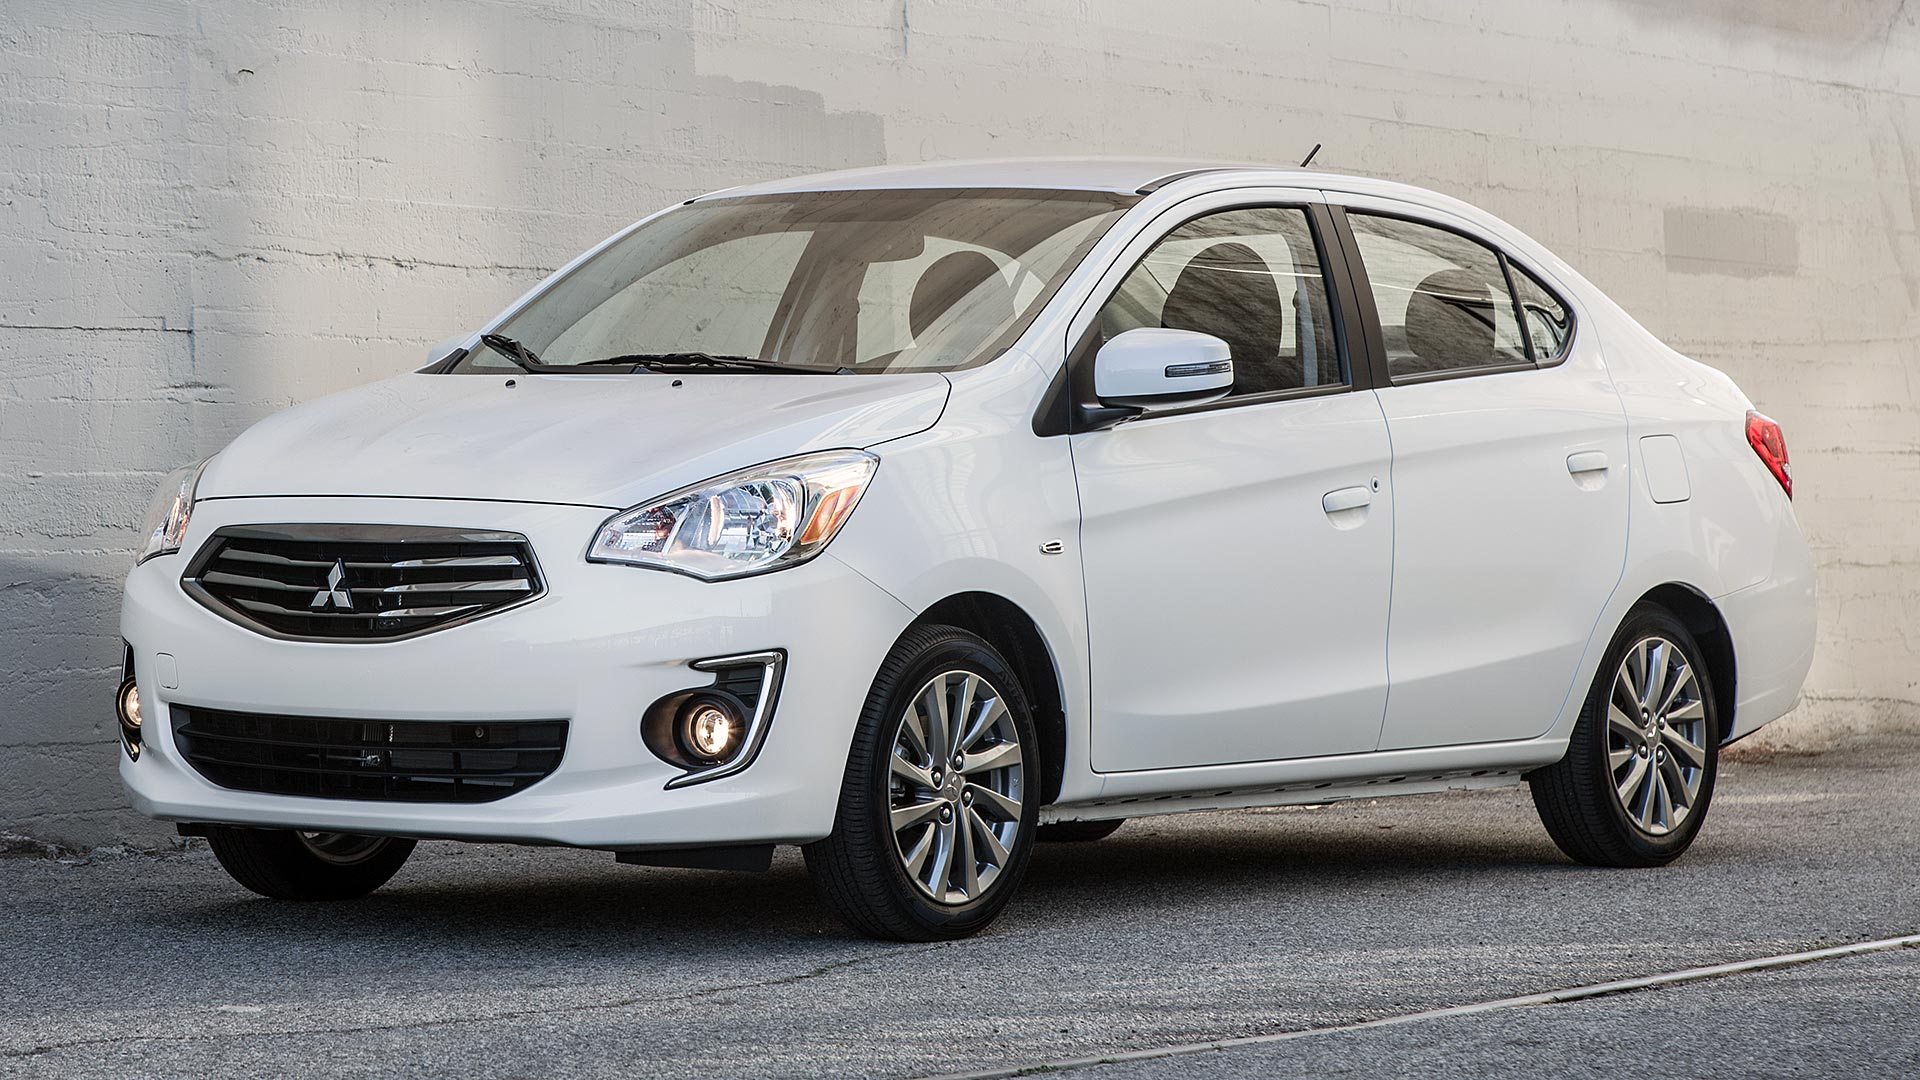 2018 Mitsubishi Mirage G4 4-door sedan